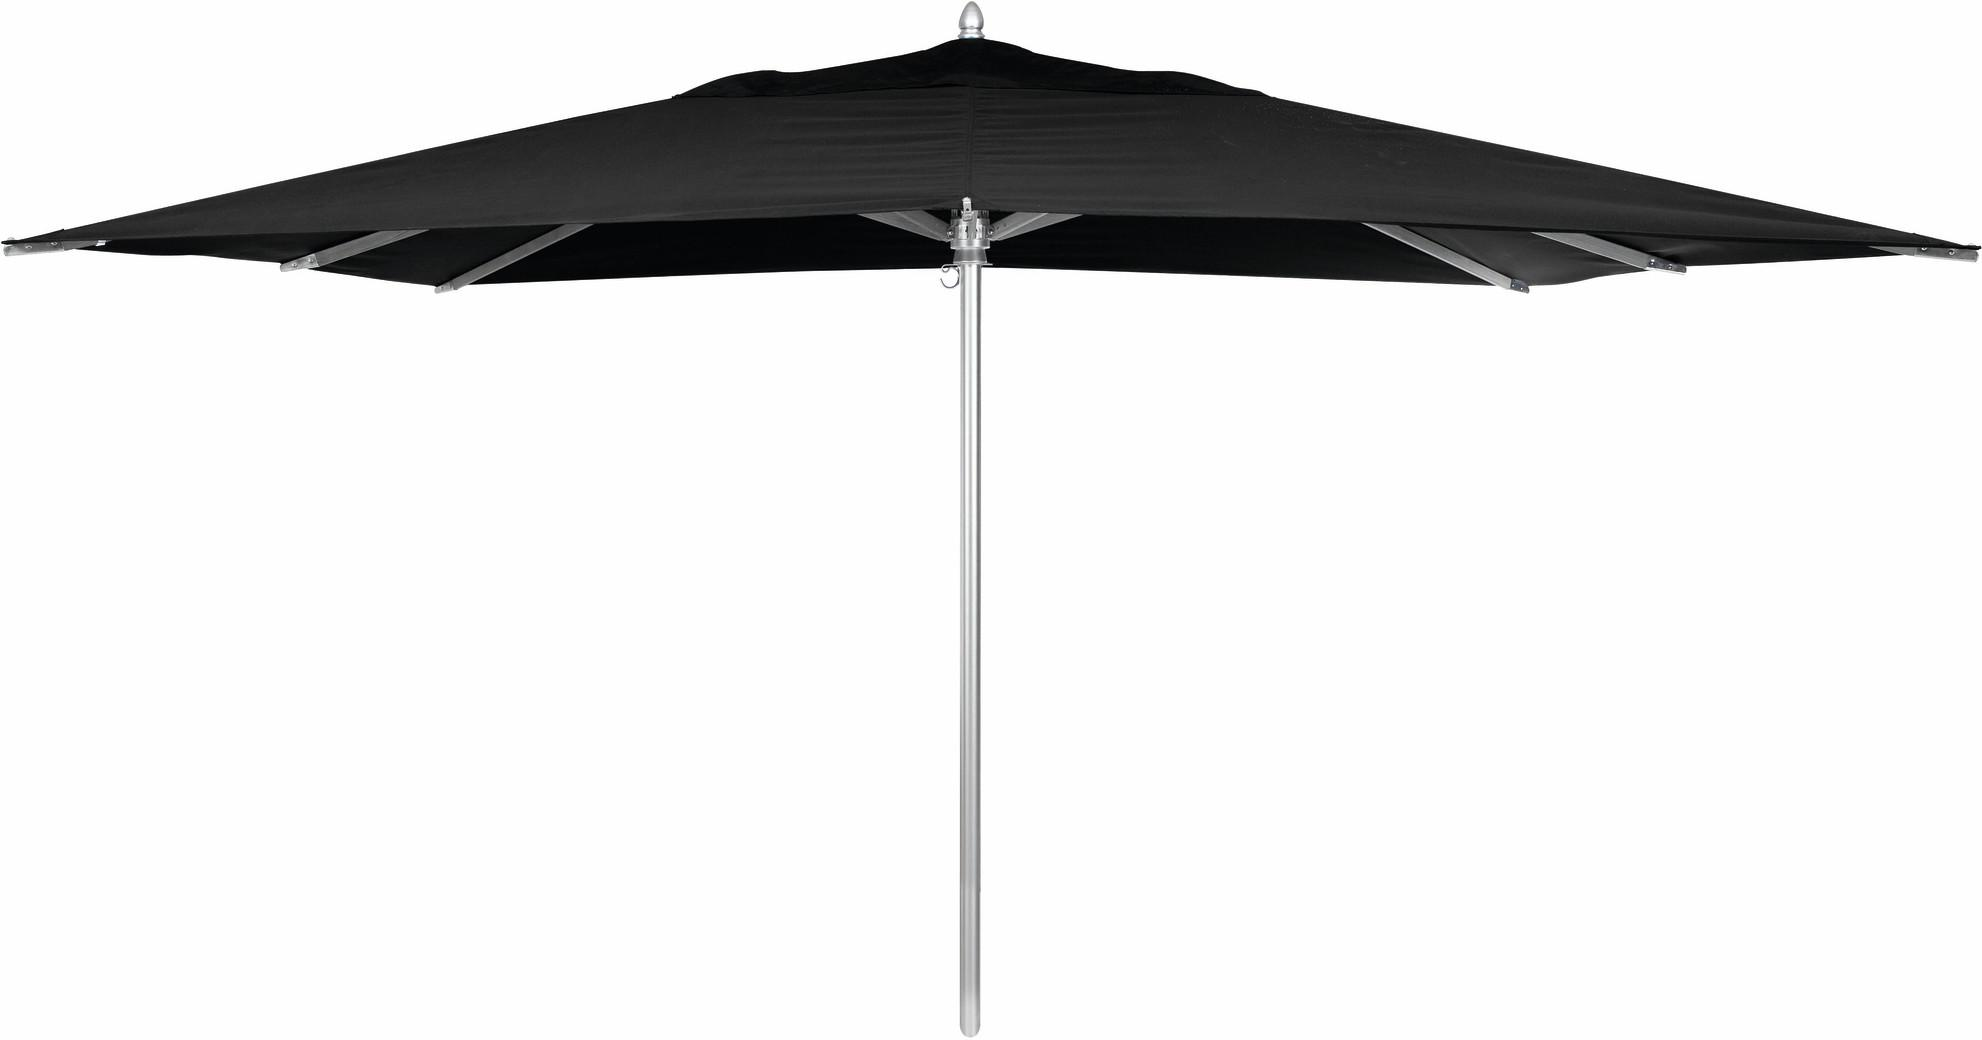 Umbrella - aluminium - 300*300 - black